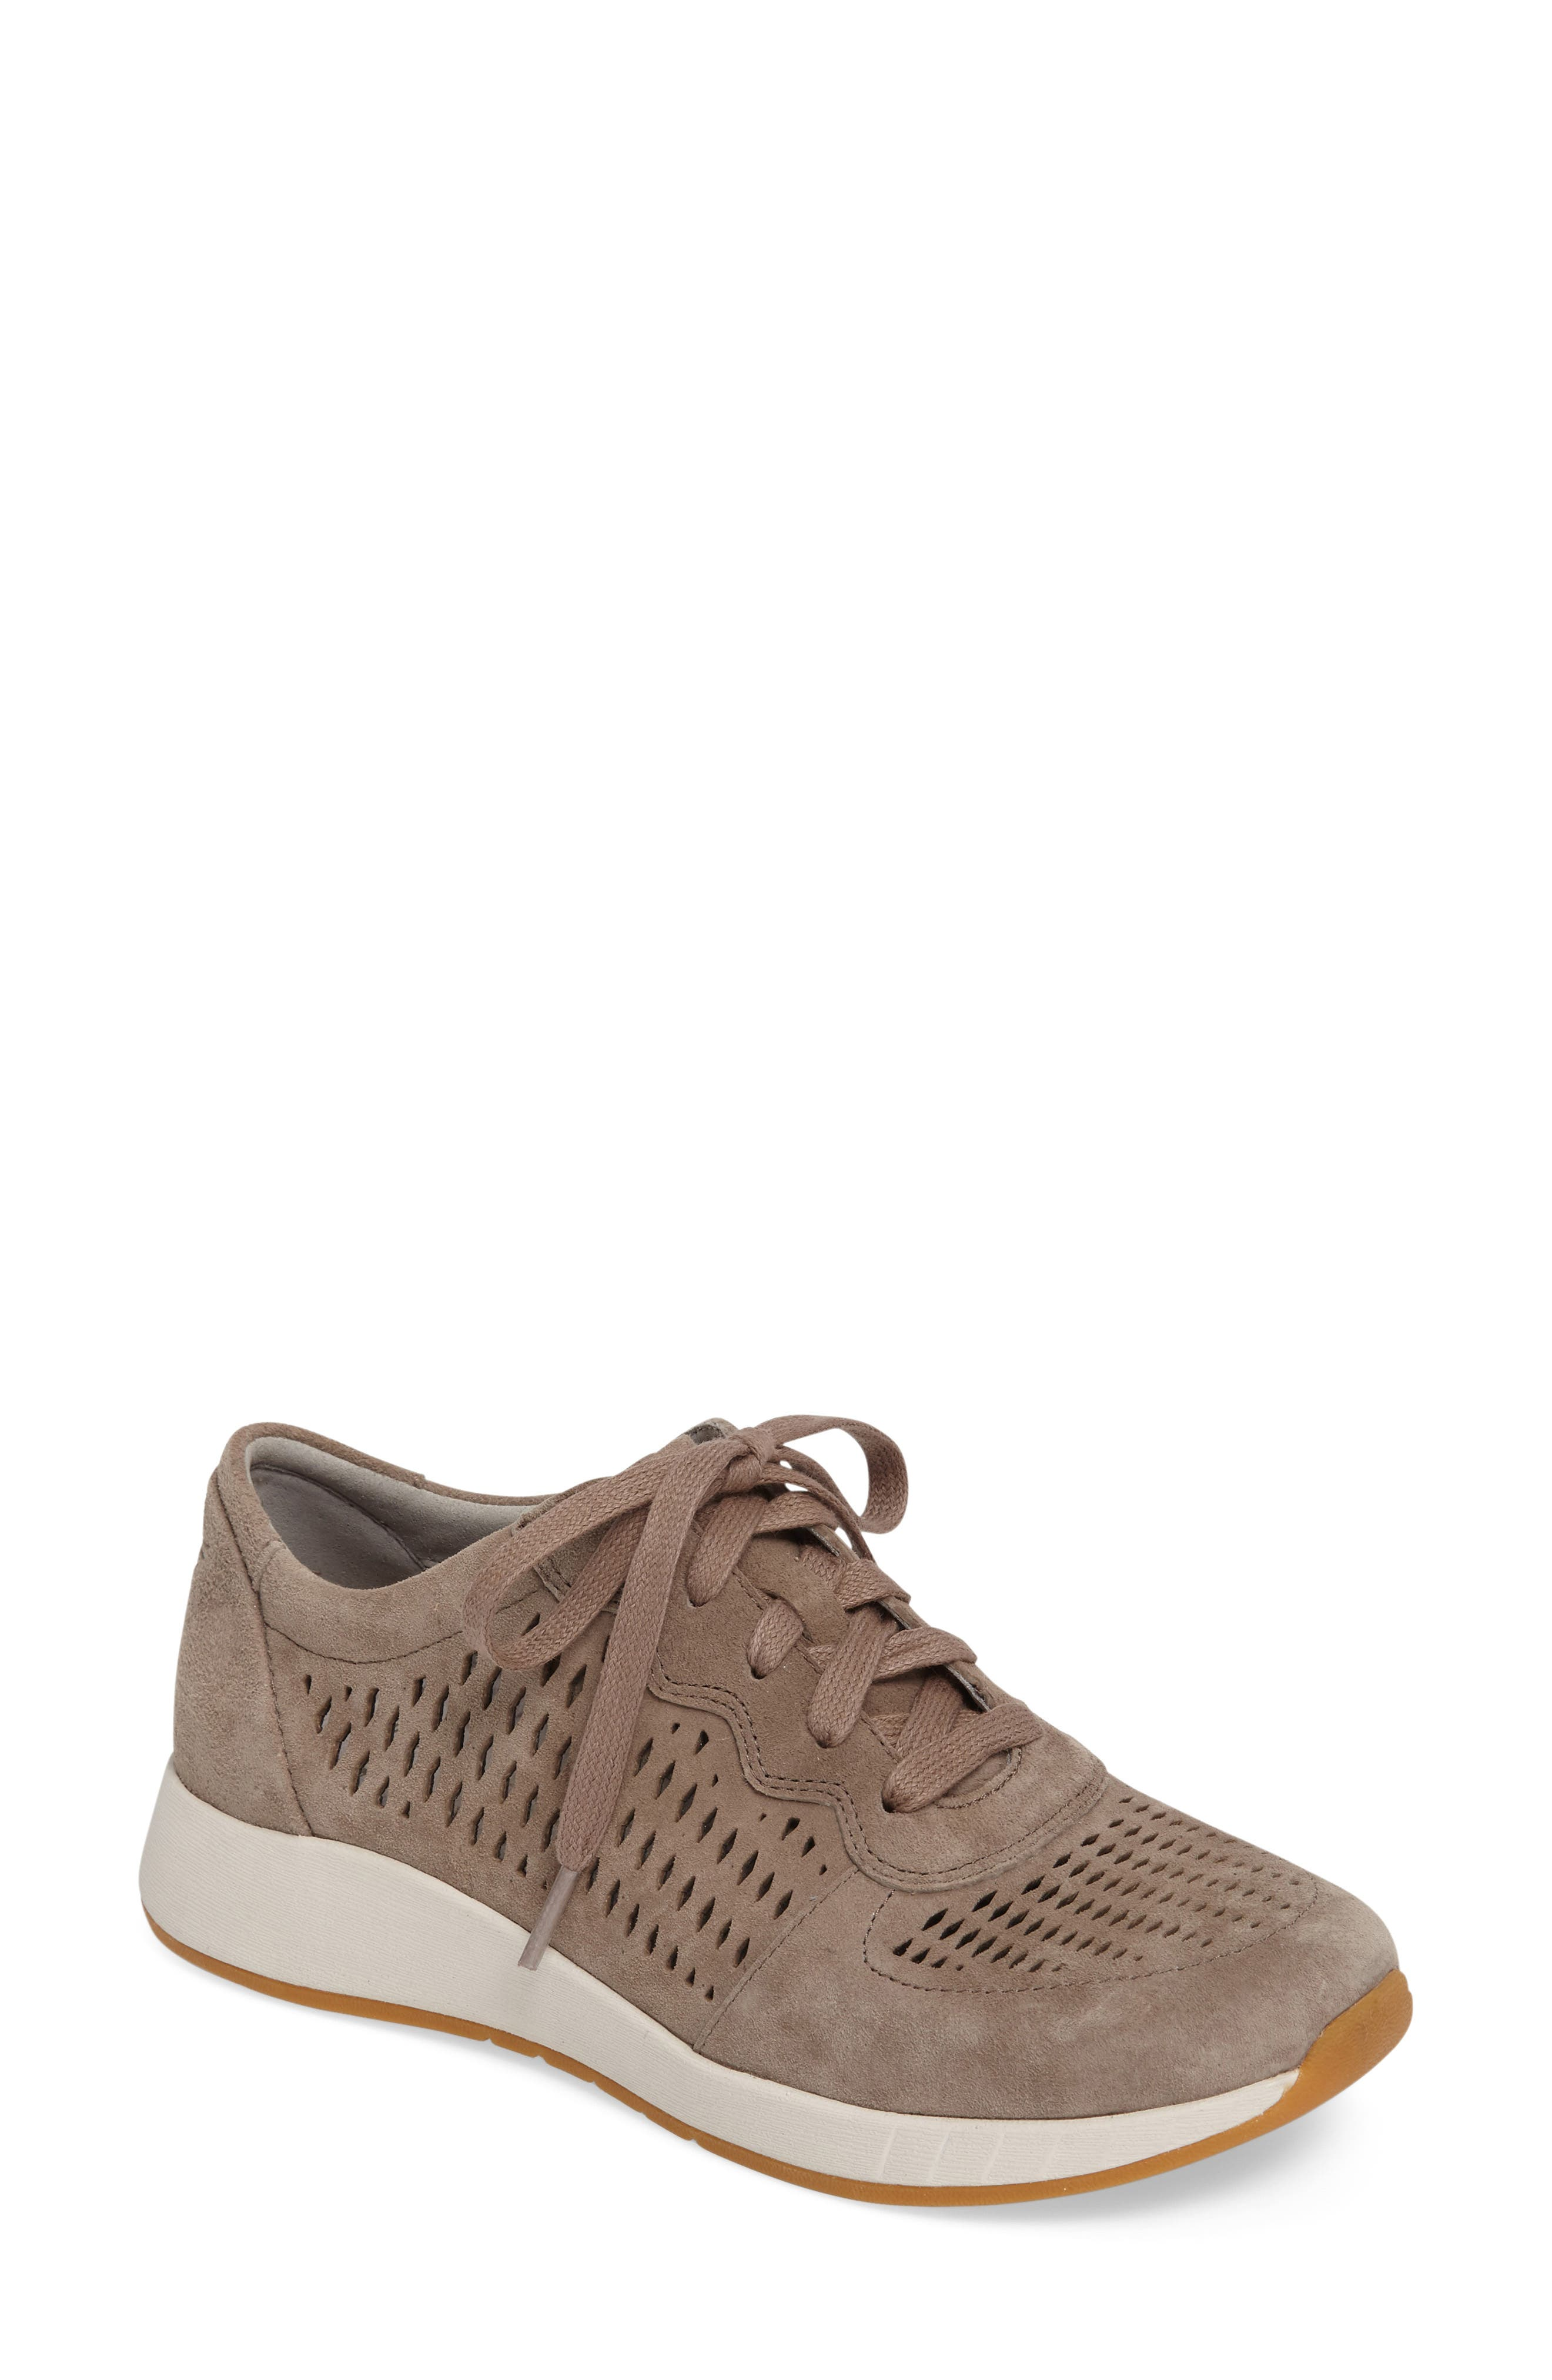 Charlie Perforated Sneaker,                         Main,                         color, WALNUT SUEDE